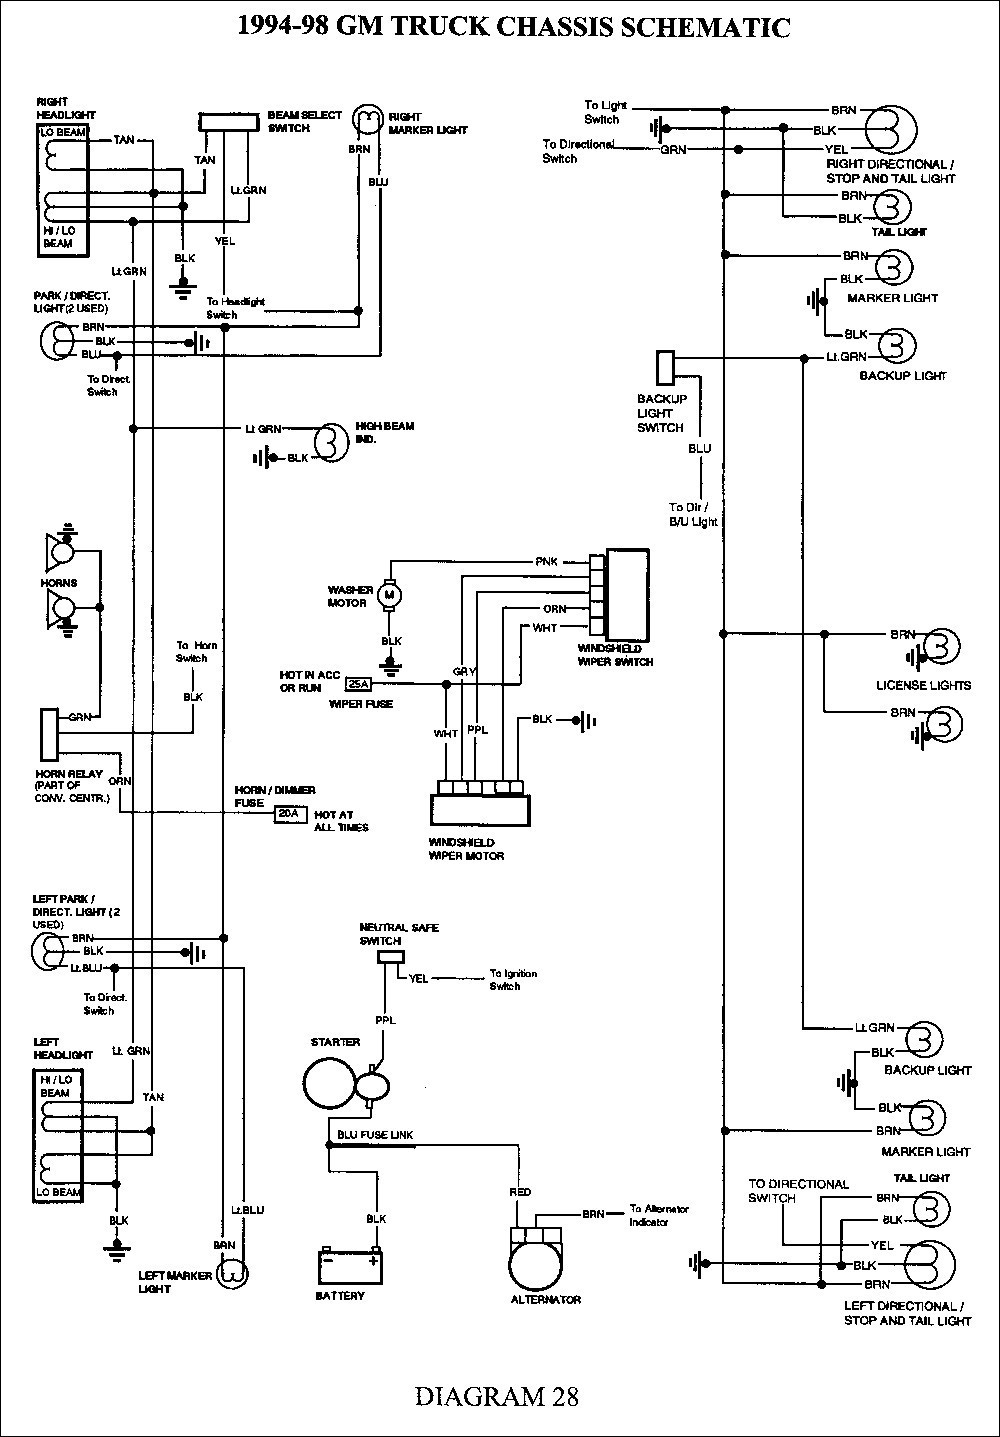 Semi Truck Light Diagram - Schema Wiring Diagram - Semi Trailer Wiring Diagram